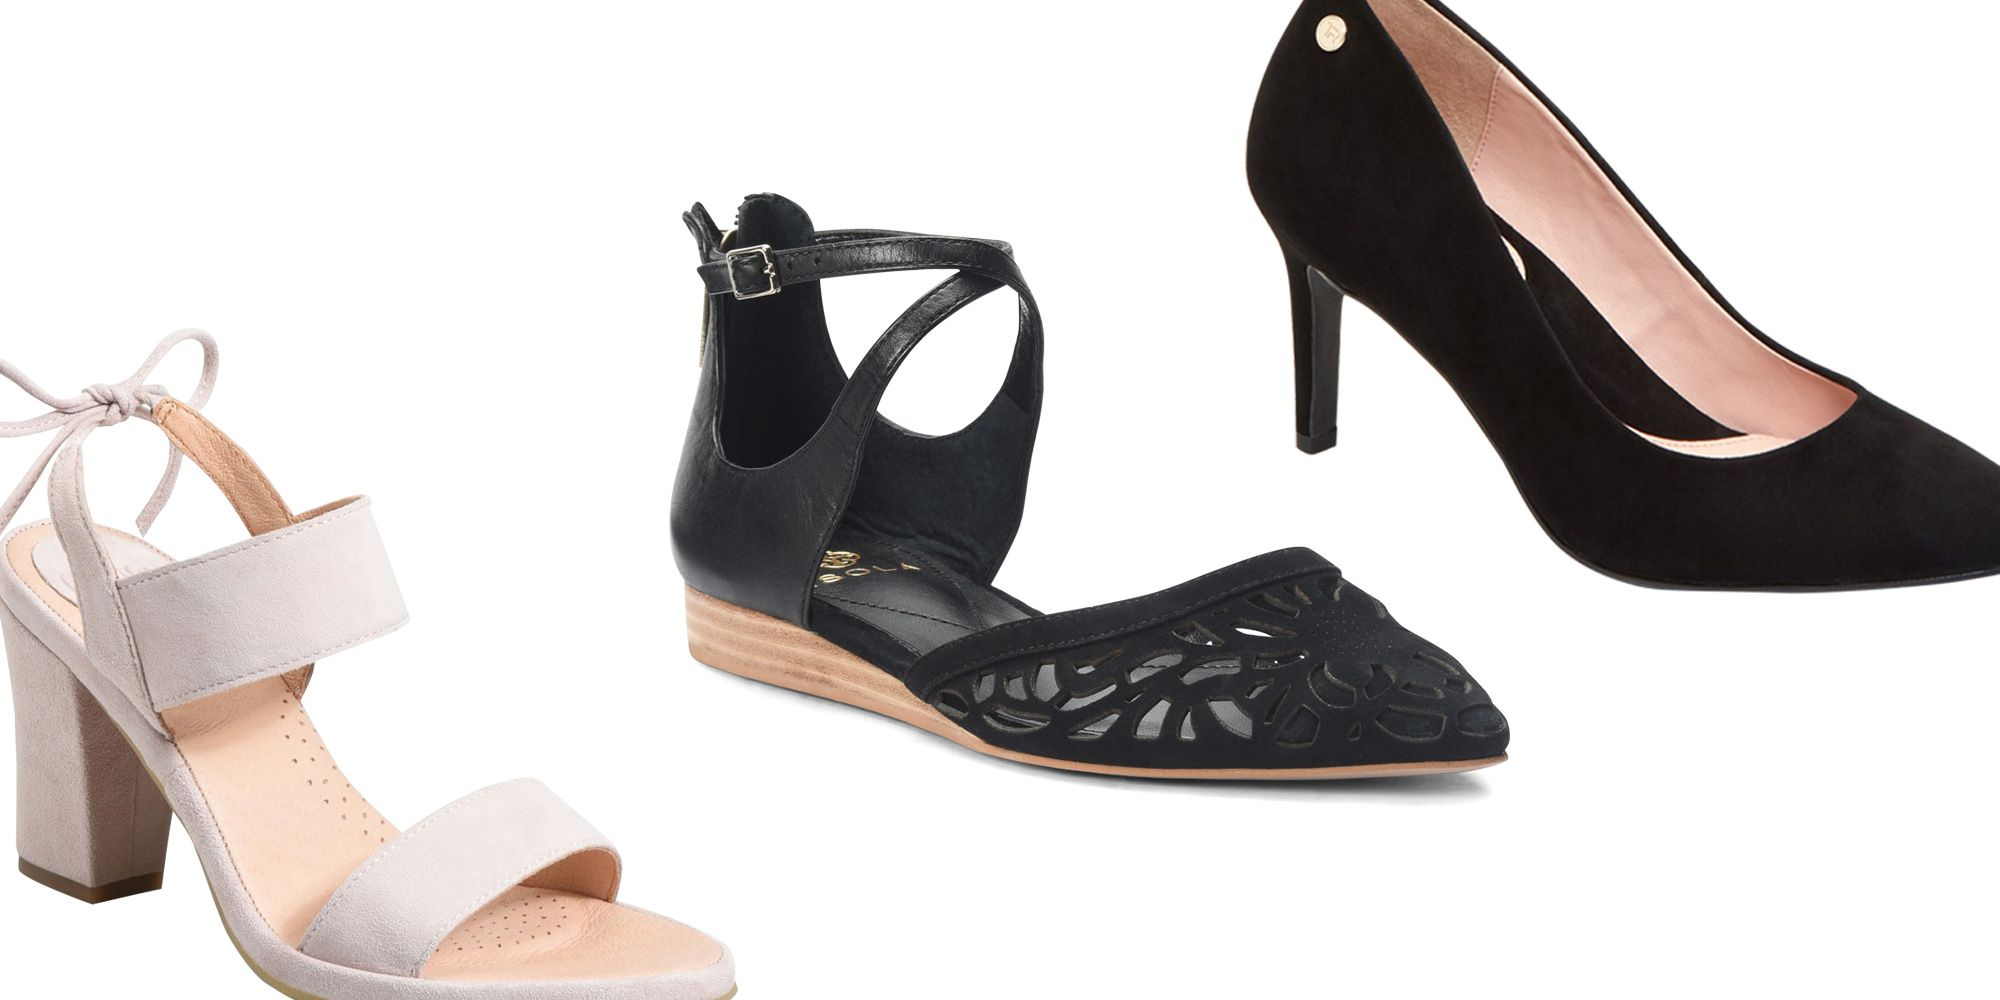 13 Work Shoes That Look Profesh—But Won't Kill Your Feet